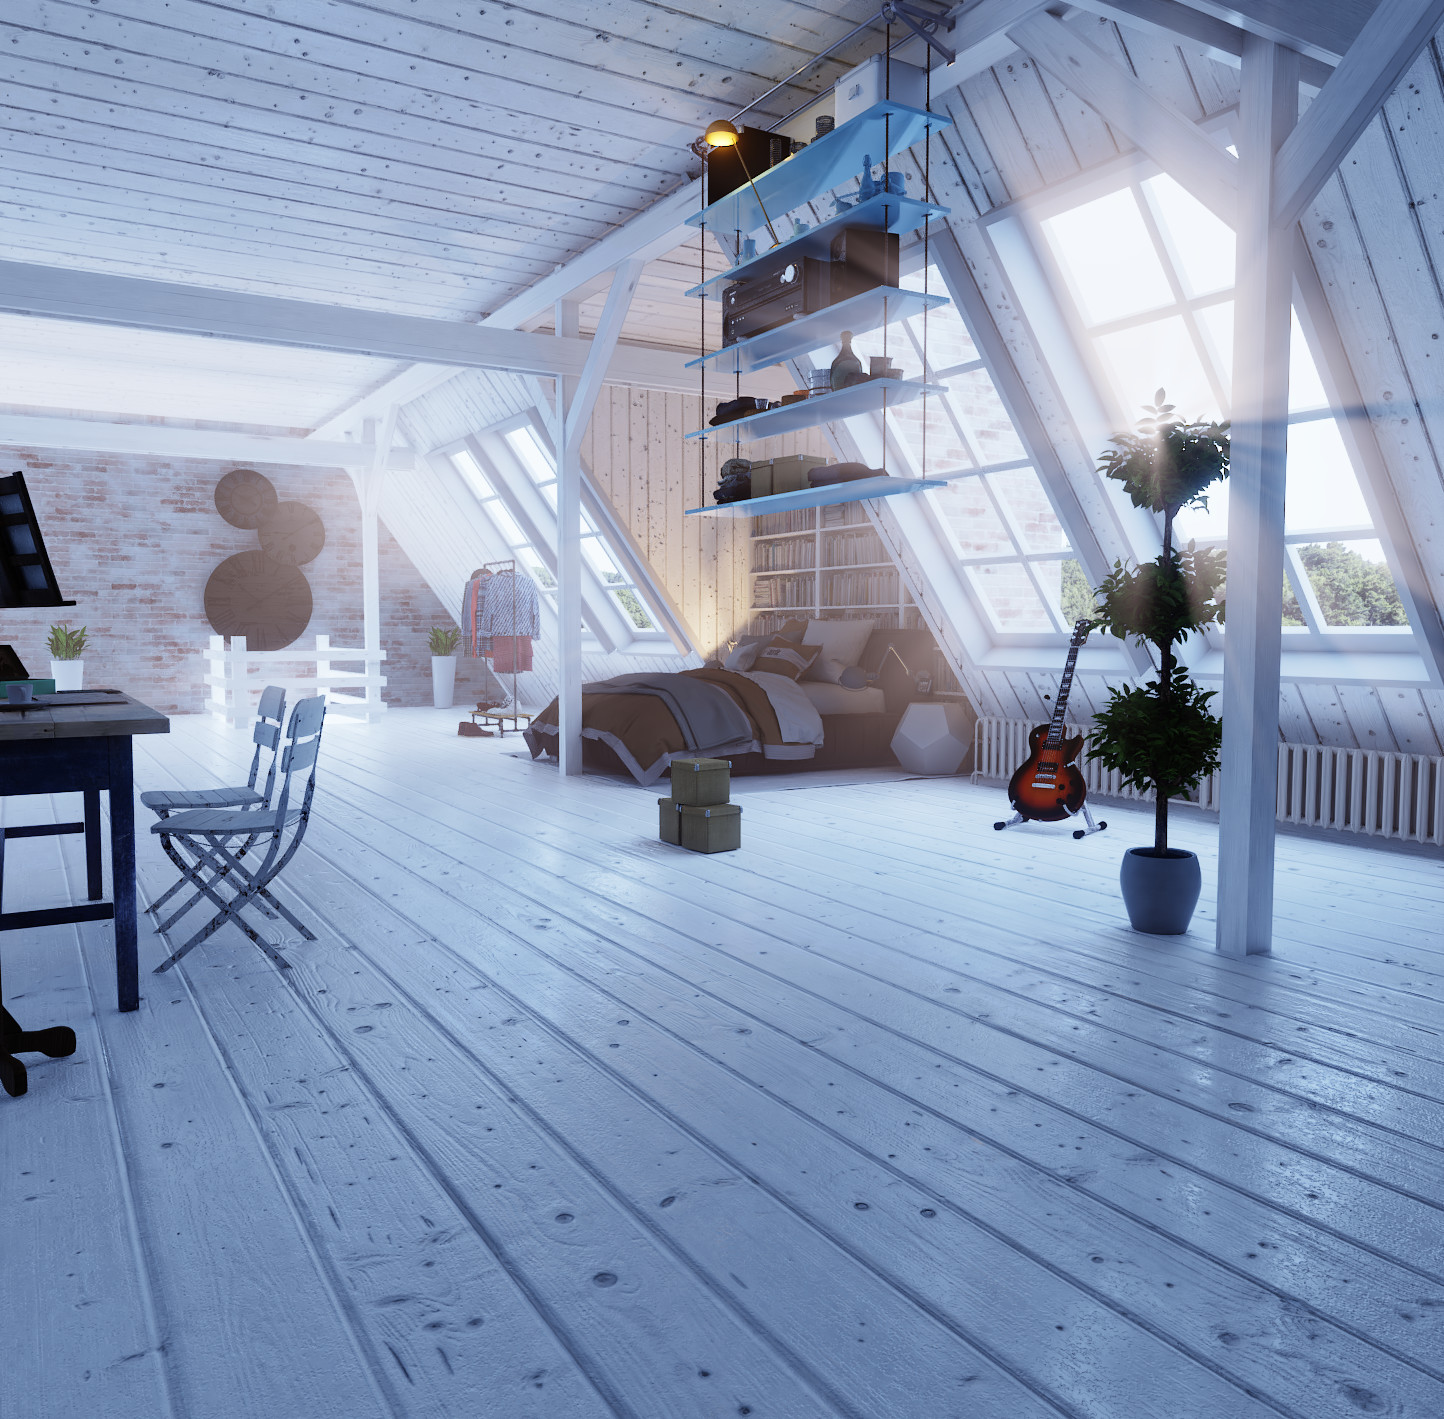 Attic atmospheric lighting